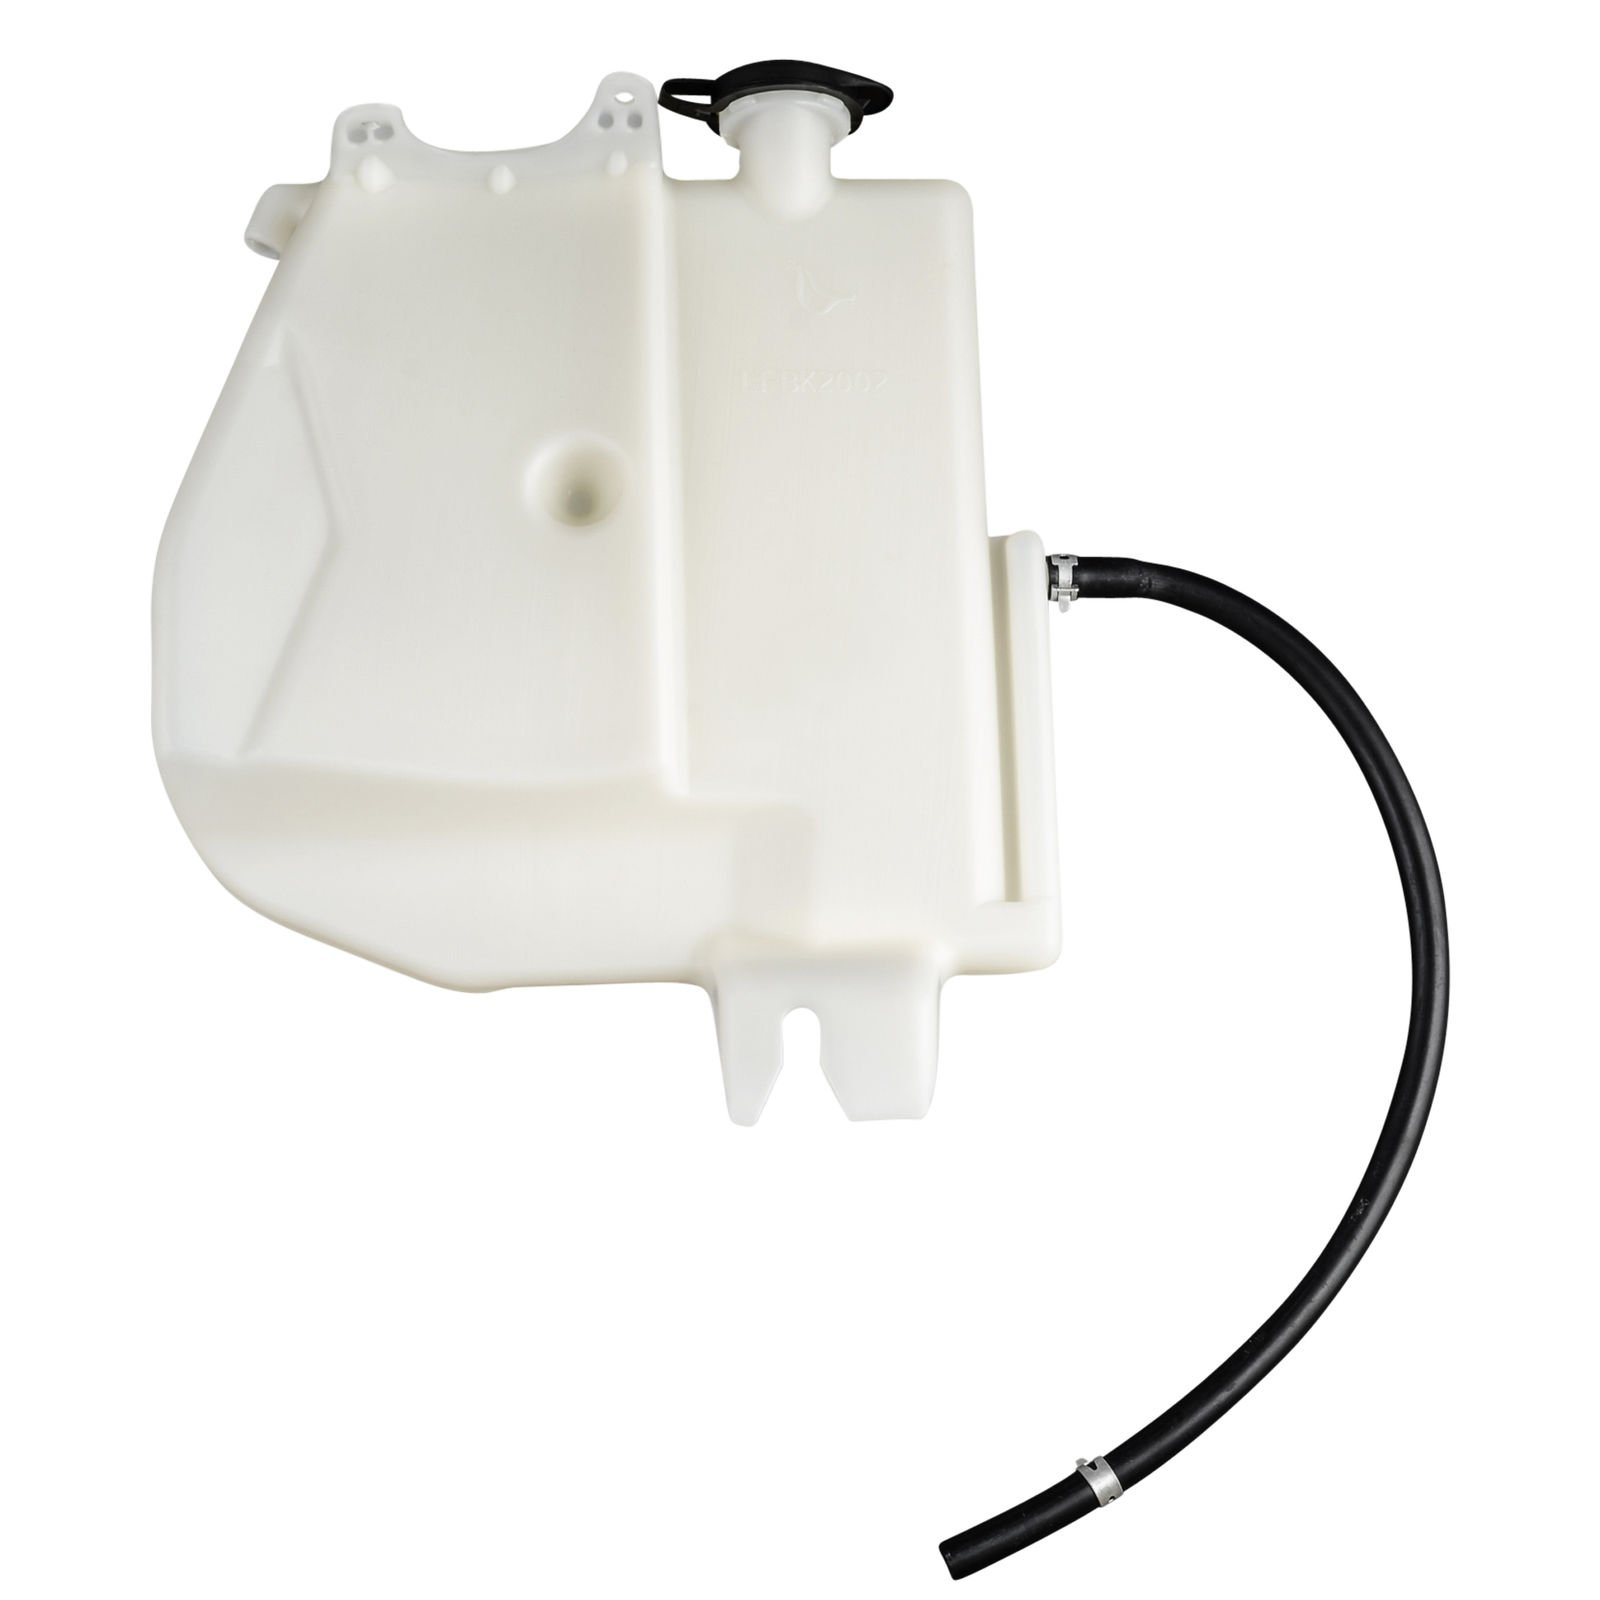 Coolant Tank for Century Regal Impala Grand Prix M-Carlo fits GM3014106 10333858 by Parts Galaxy